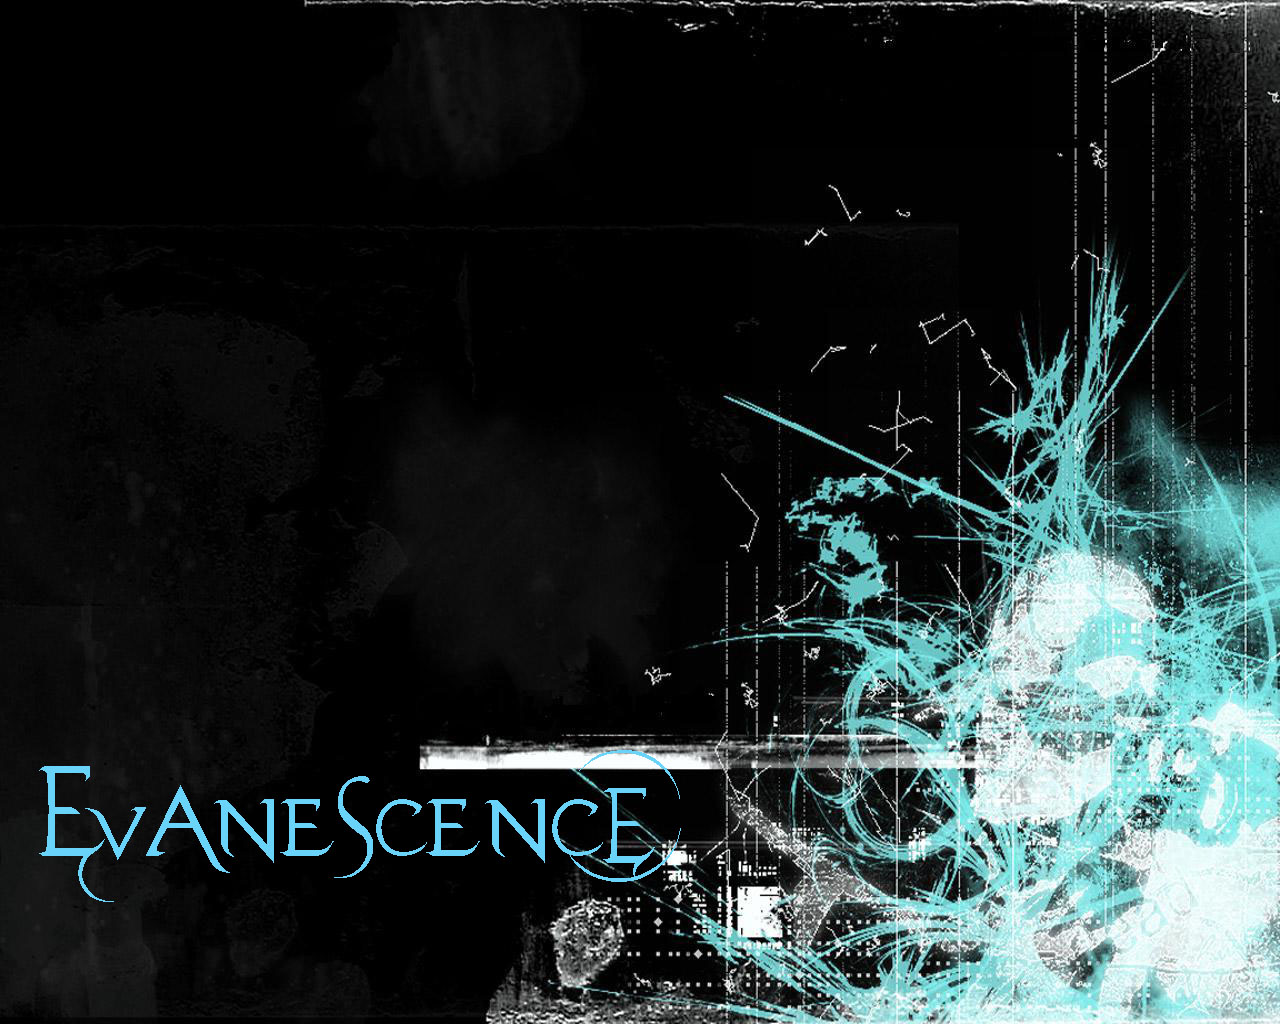 evanescence wallpaper lee evanescence hd wallpapers popstar download 1280x1024